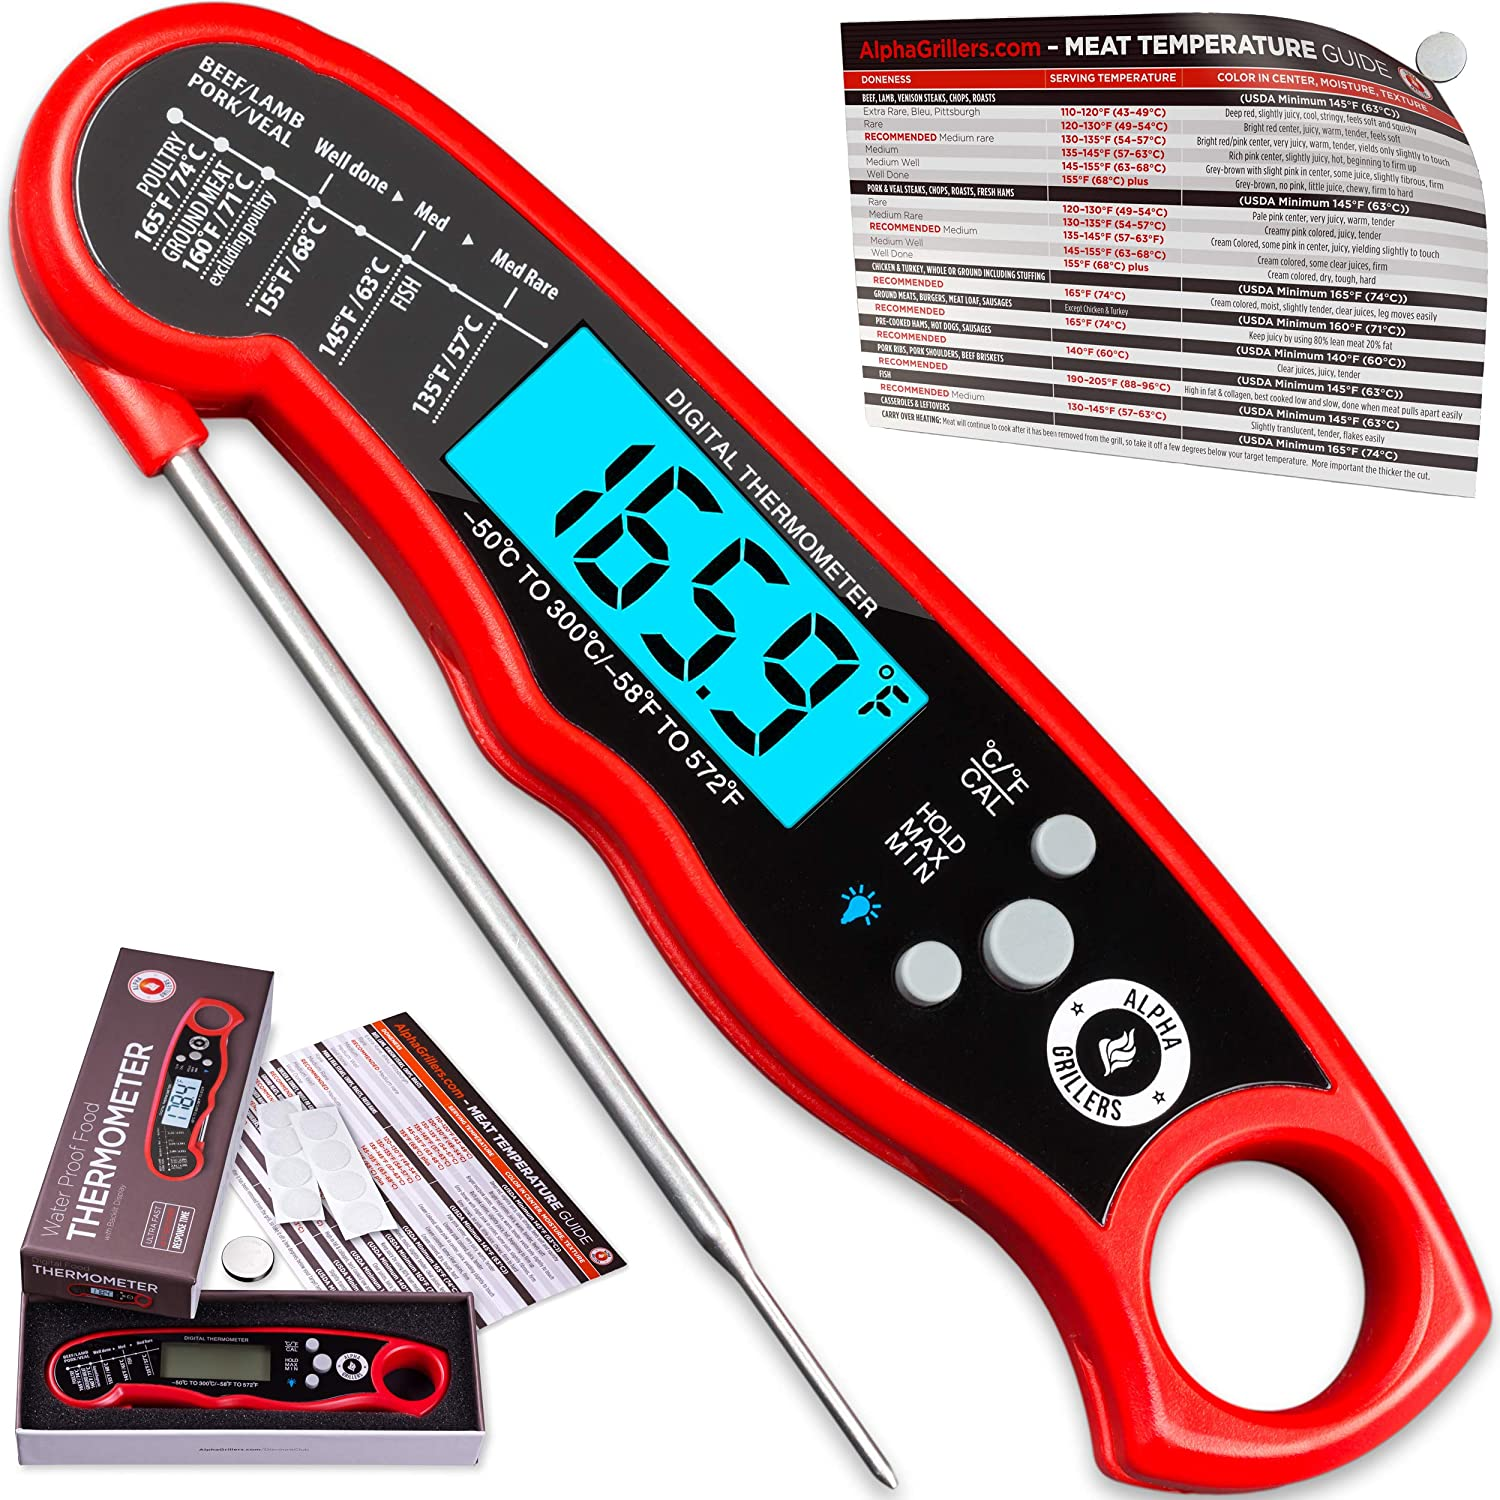 Alpha Grillers Instant Read Meat Thermometer for Grill and Cooking. Best Waterproof Ultra Fast Thermometer with Backlight & Calibration. Digital Food Probe for Kitchen, Outdoor Grilling and BBQ!: Kitchen & Dining